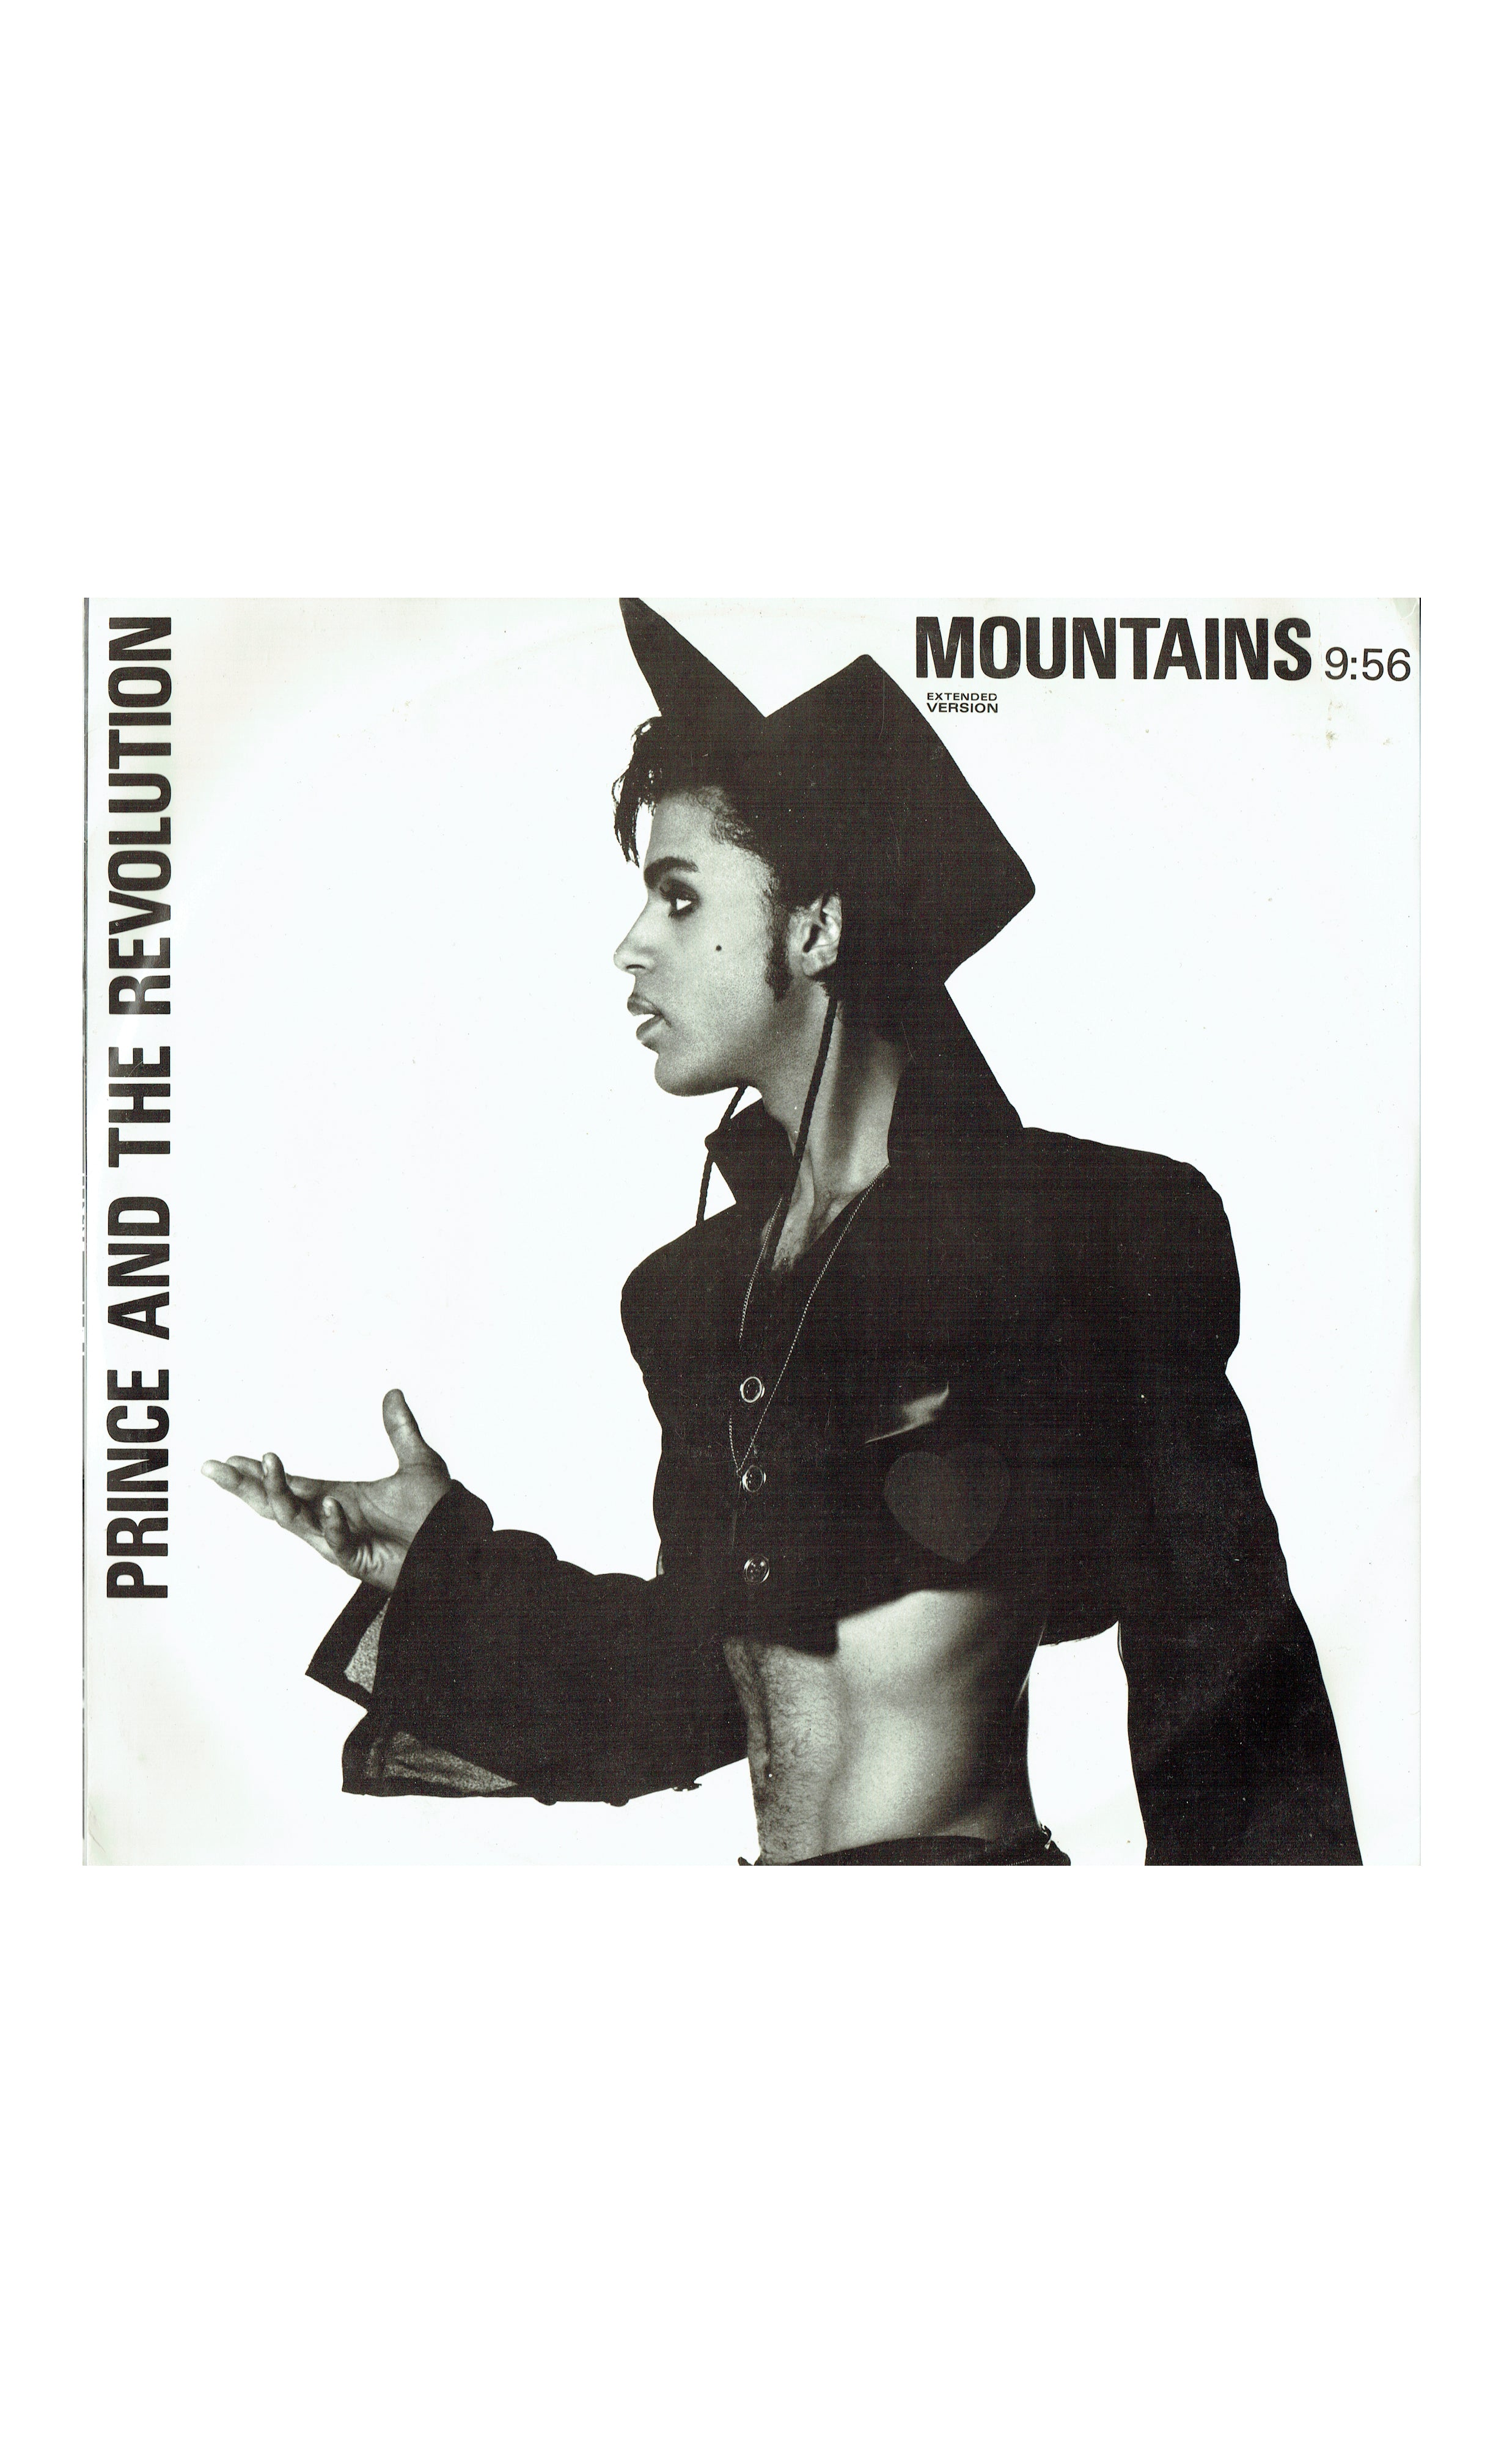 Prince & The Revolution Mountains Ext Version UK 12 Inch Vinyl 1986 2 Tracks W8711T